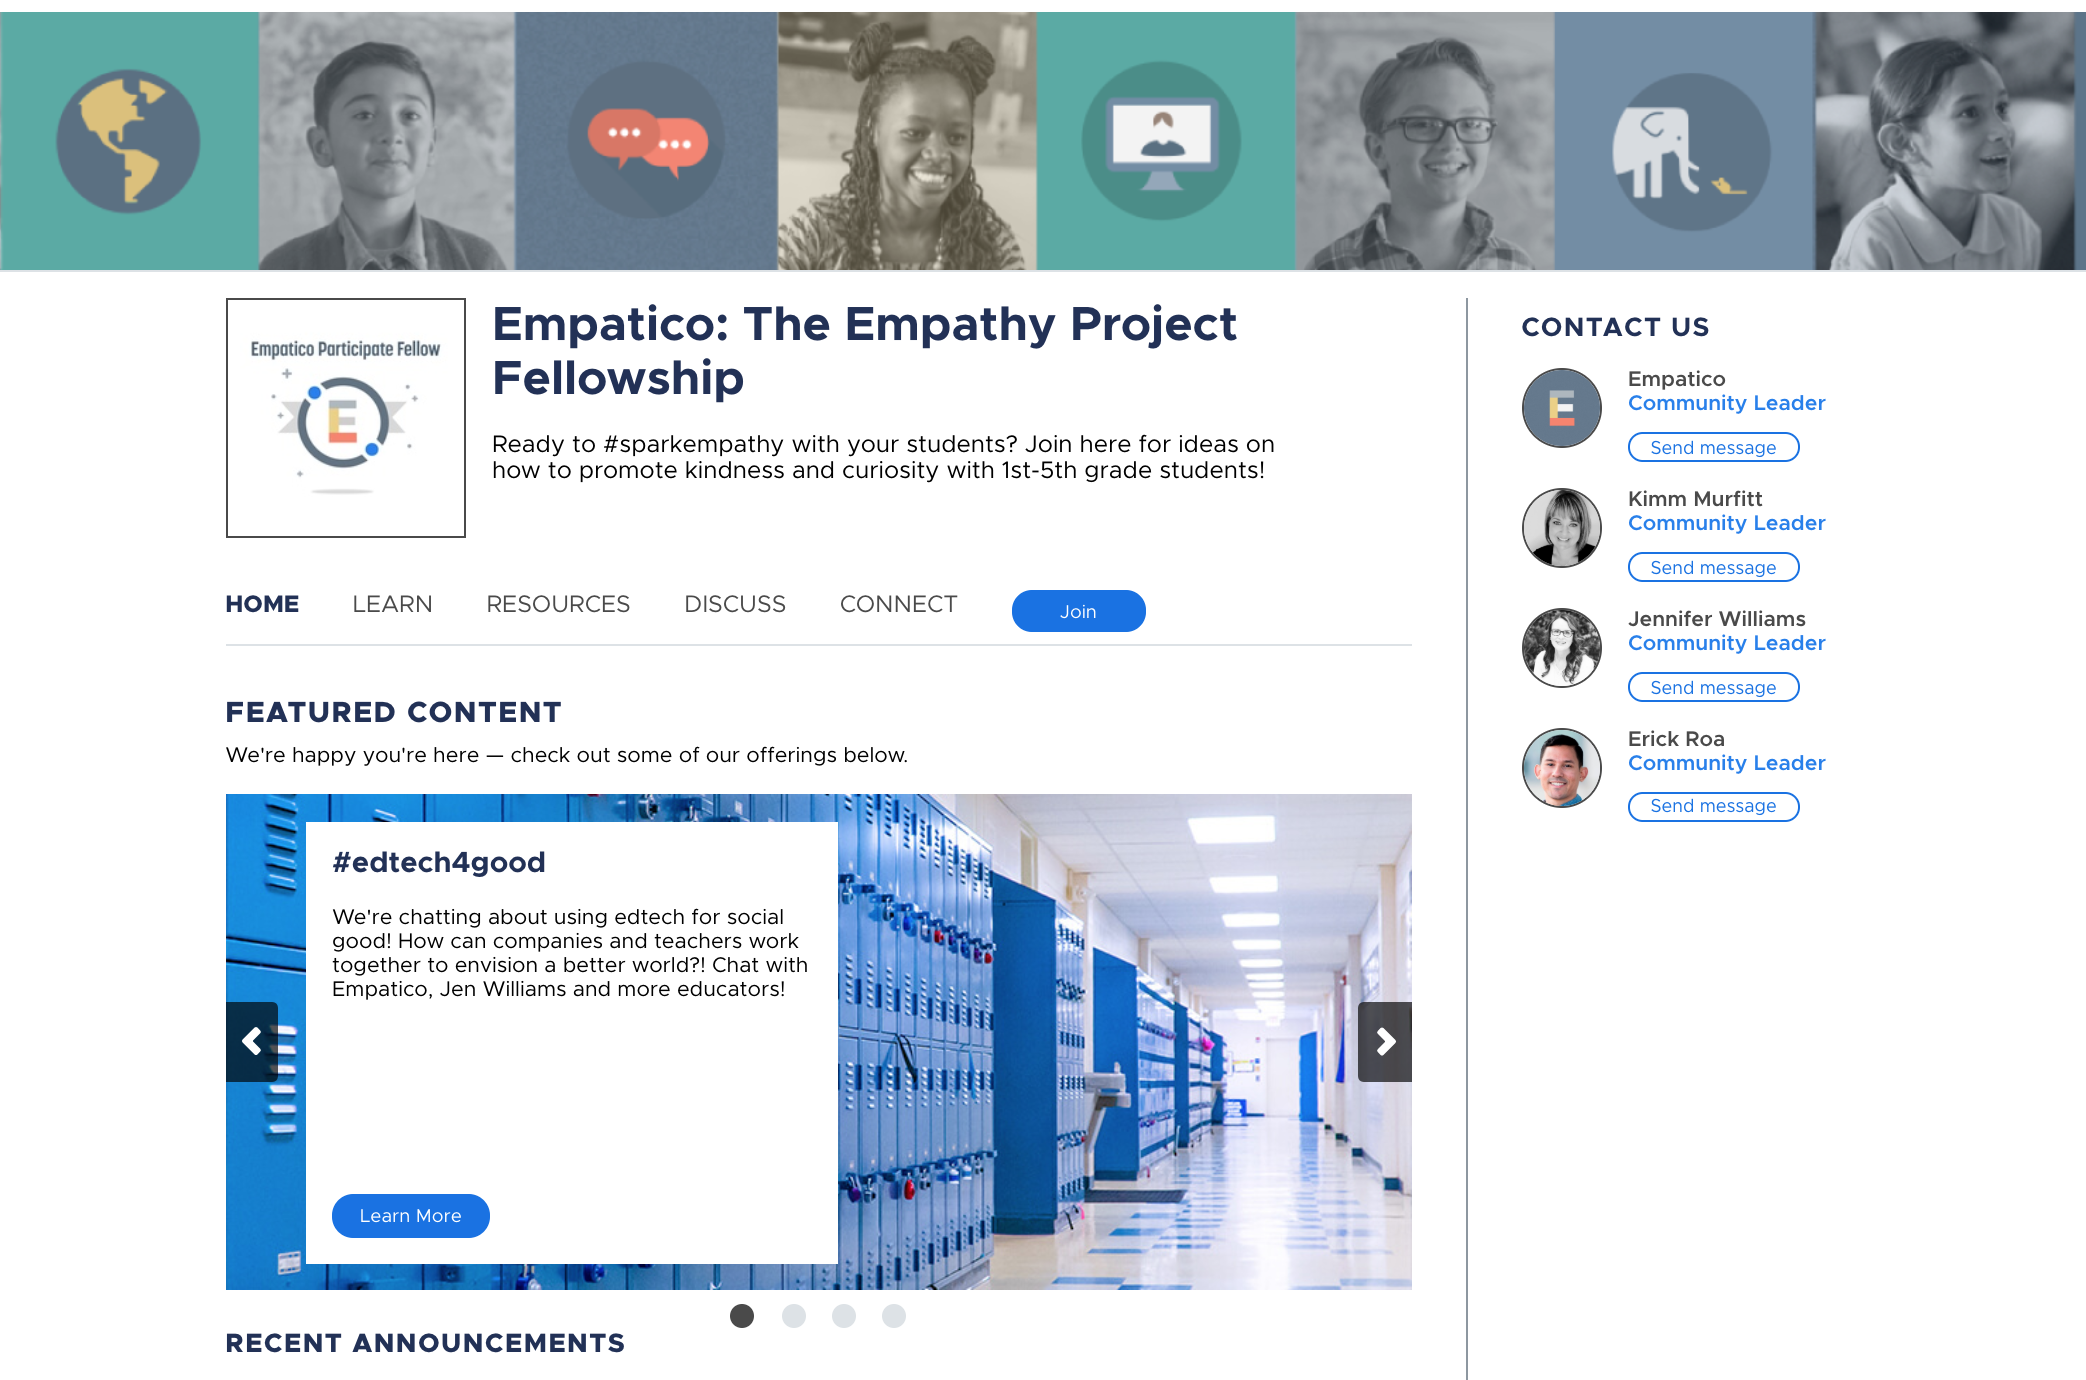 Empathy Project community